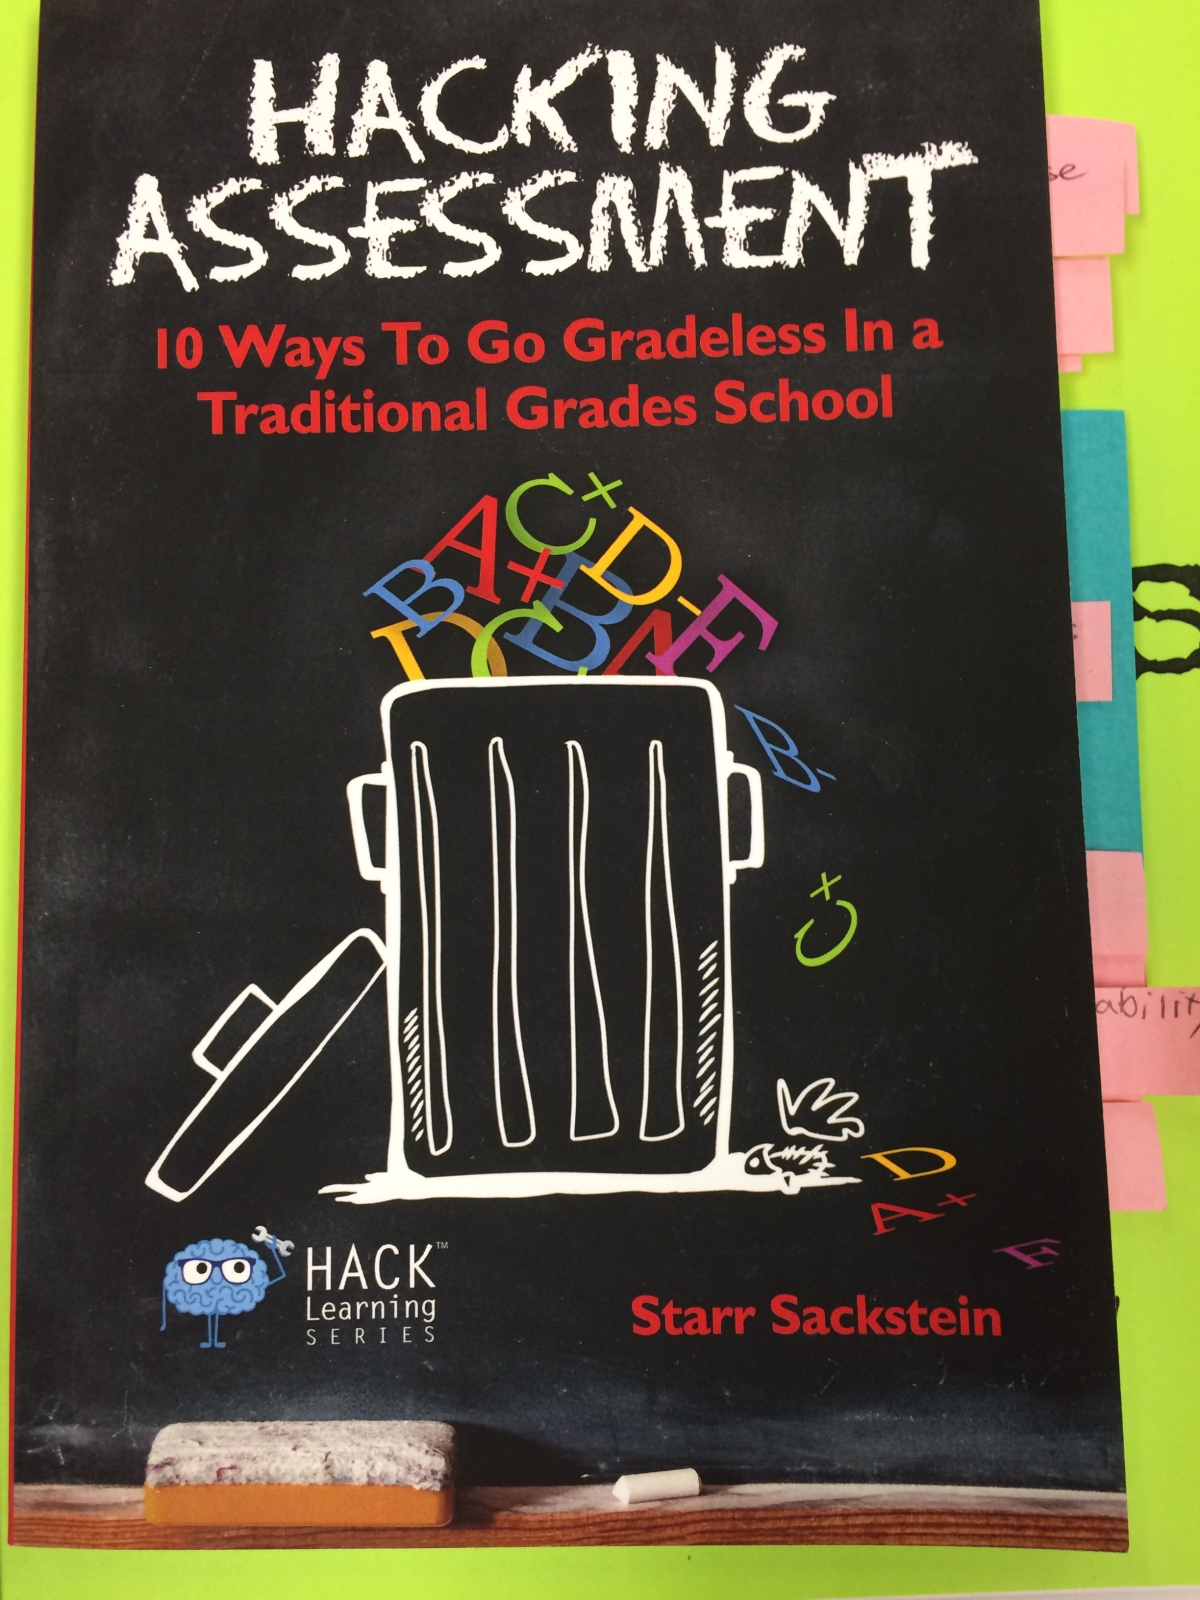 Hacking Assessment, a Slightly Off Topic Review